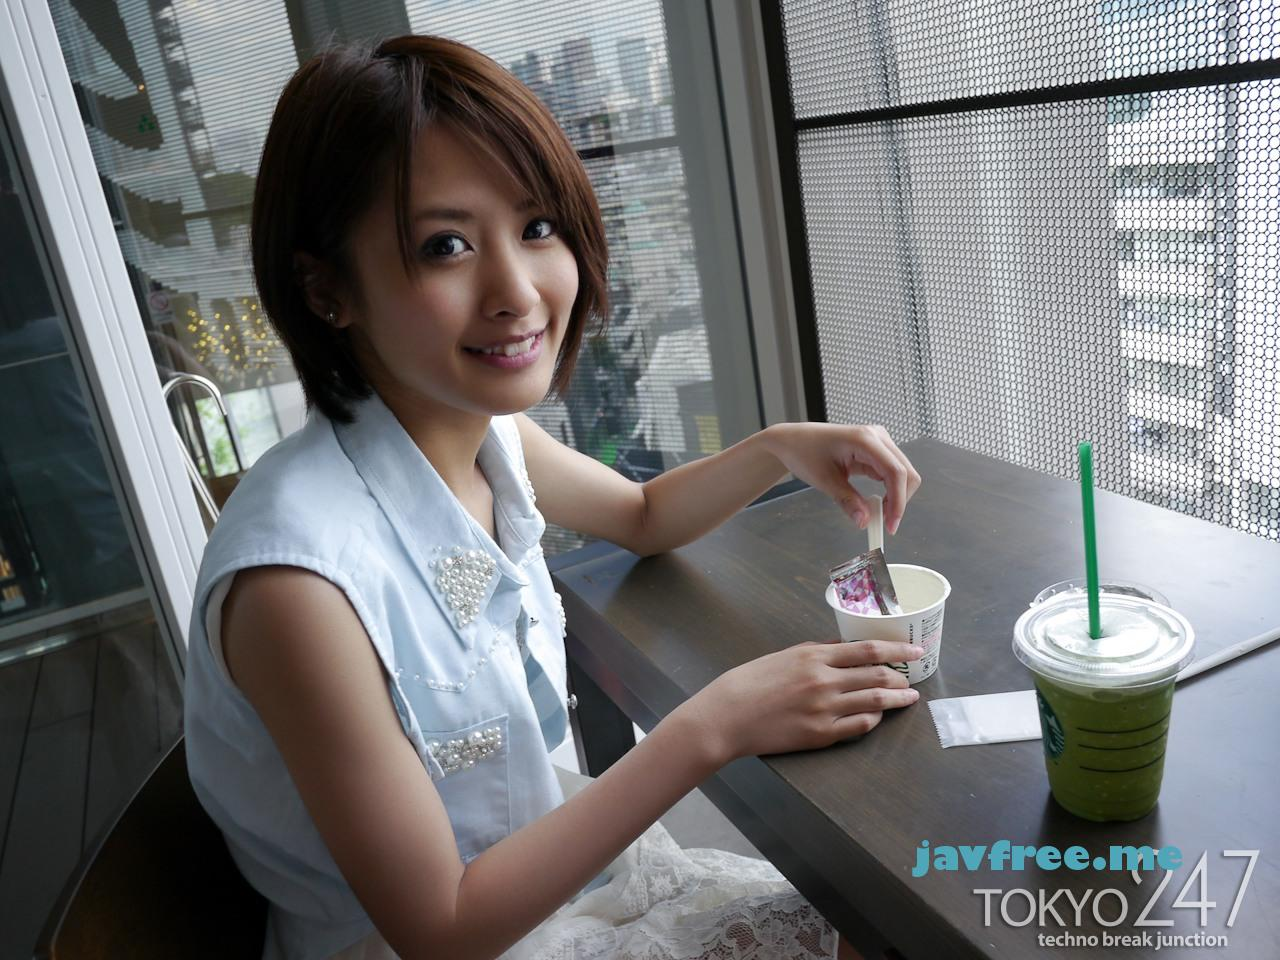 Tokyo-247 406yuuki夏目優希 - image ms_406yuuki016 on https://javfree.me